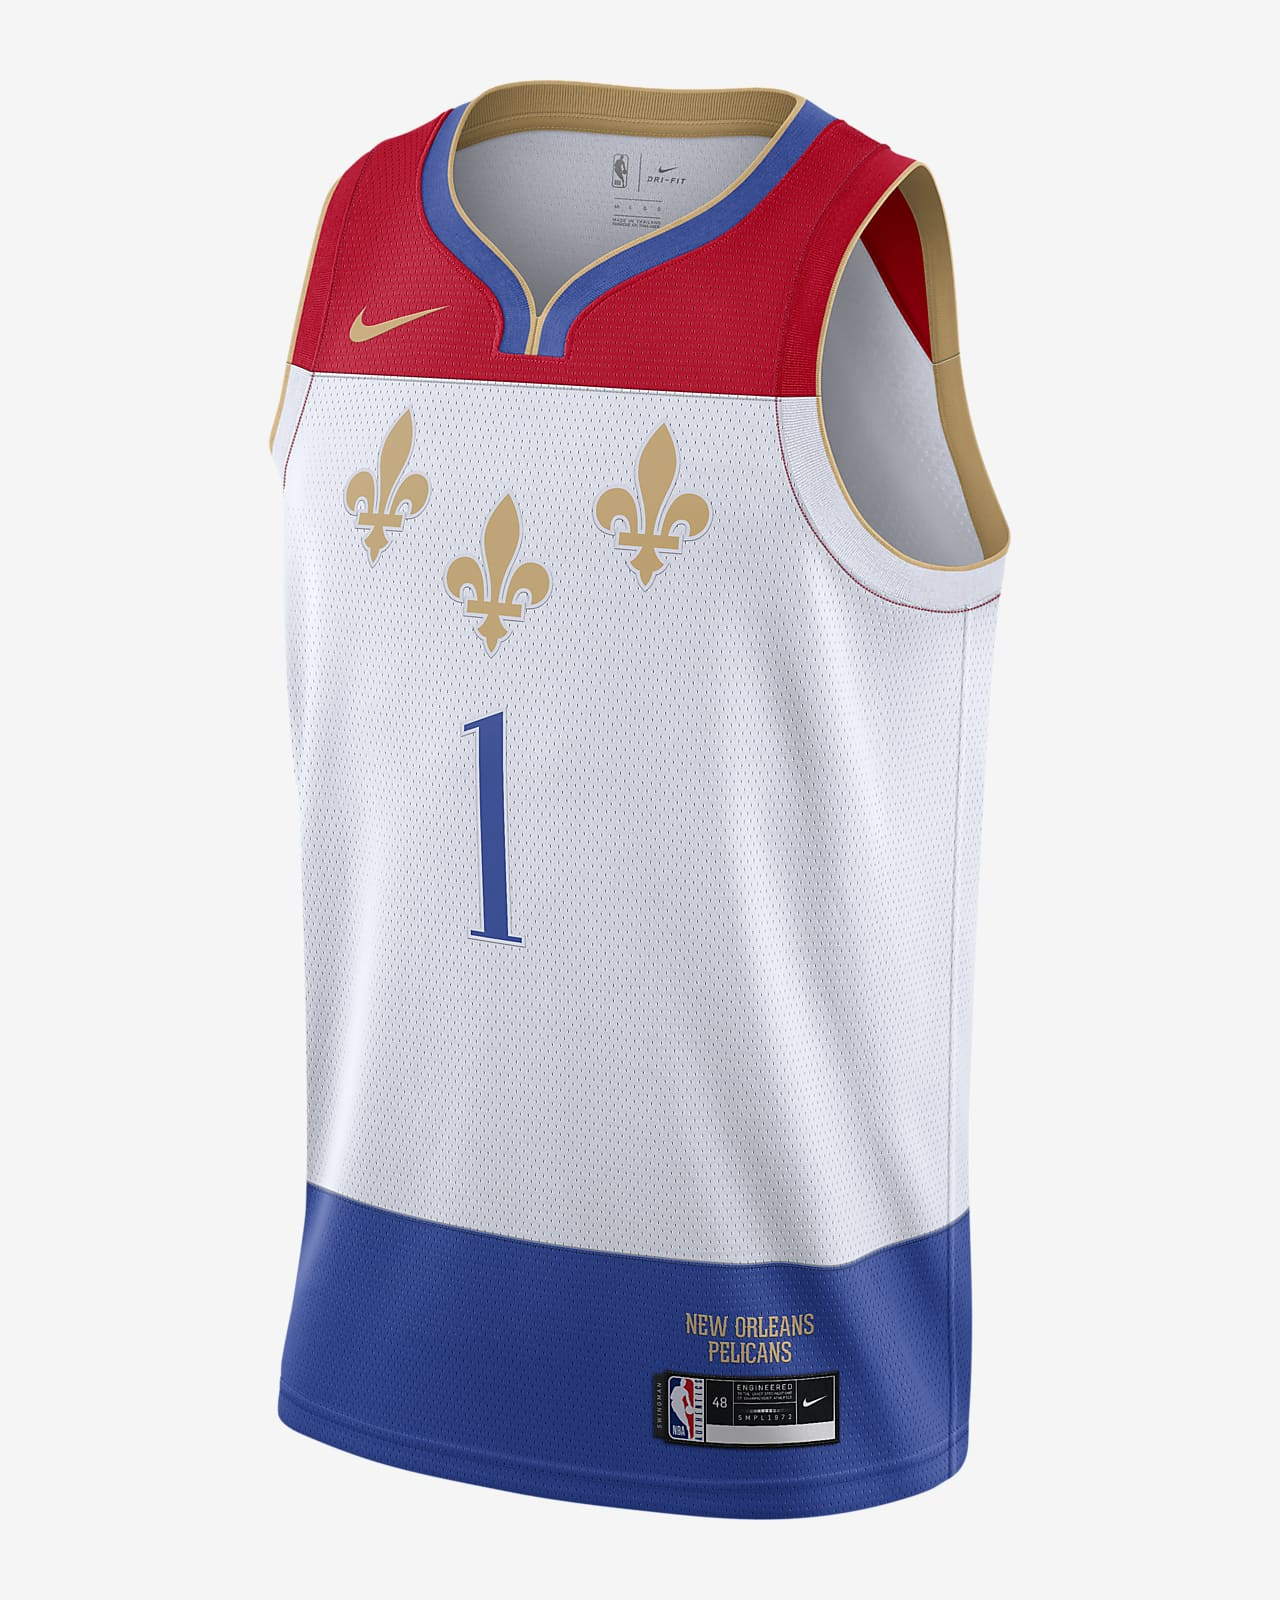 Maillot Nike NBA Swingman New Orleans Pelicans City Edition